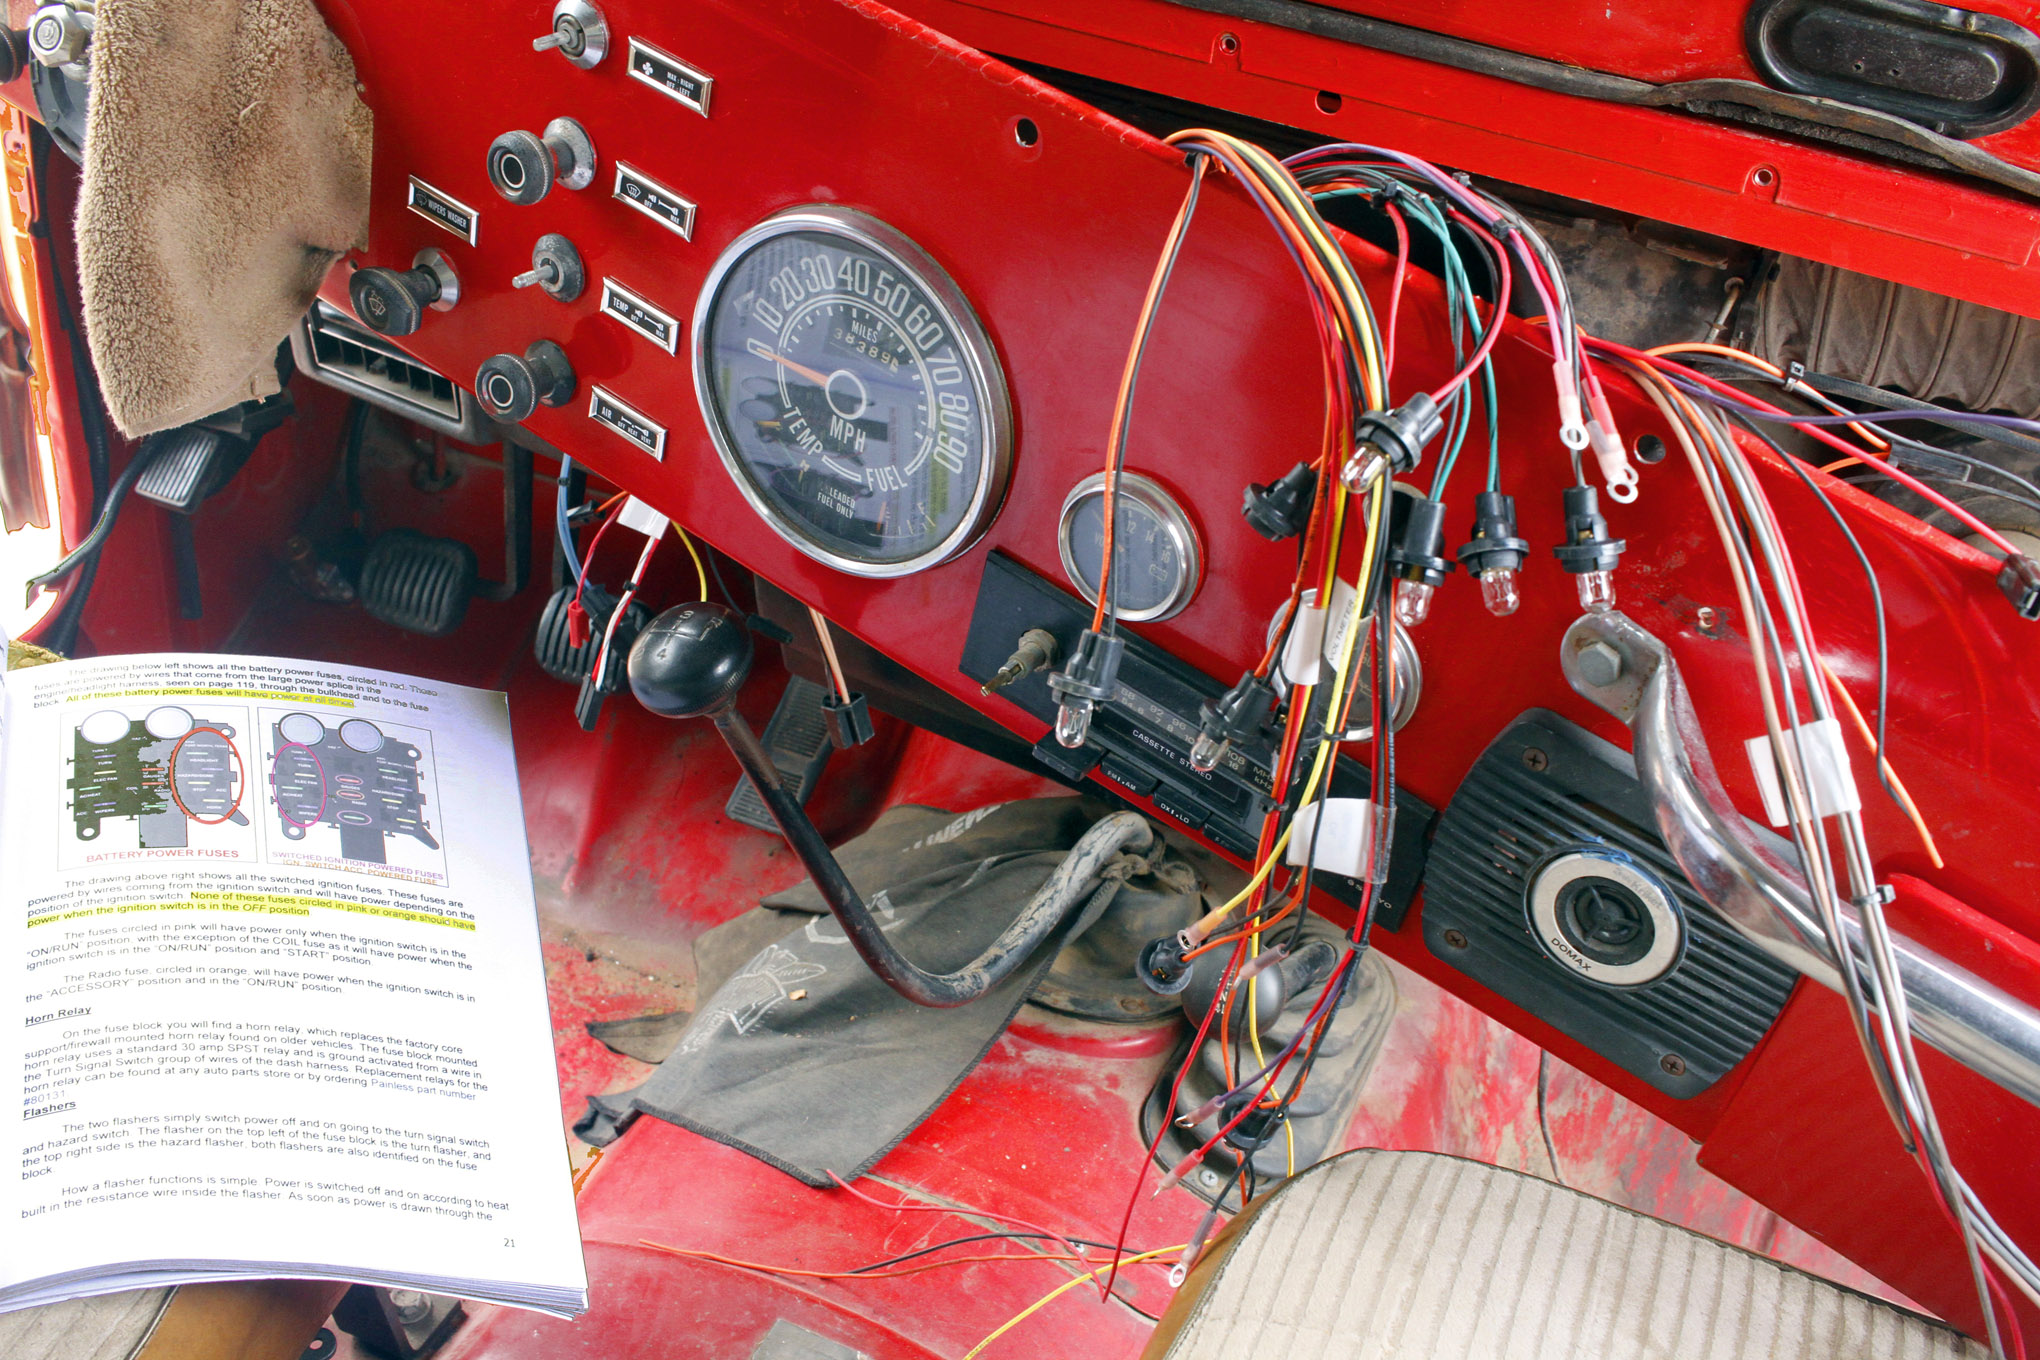 cj7 dash wiring harness route wiring schematic diagram 8 shanwu co volvo 240 wire harness how [ 2040 x 1360 Pixel ]